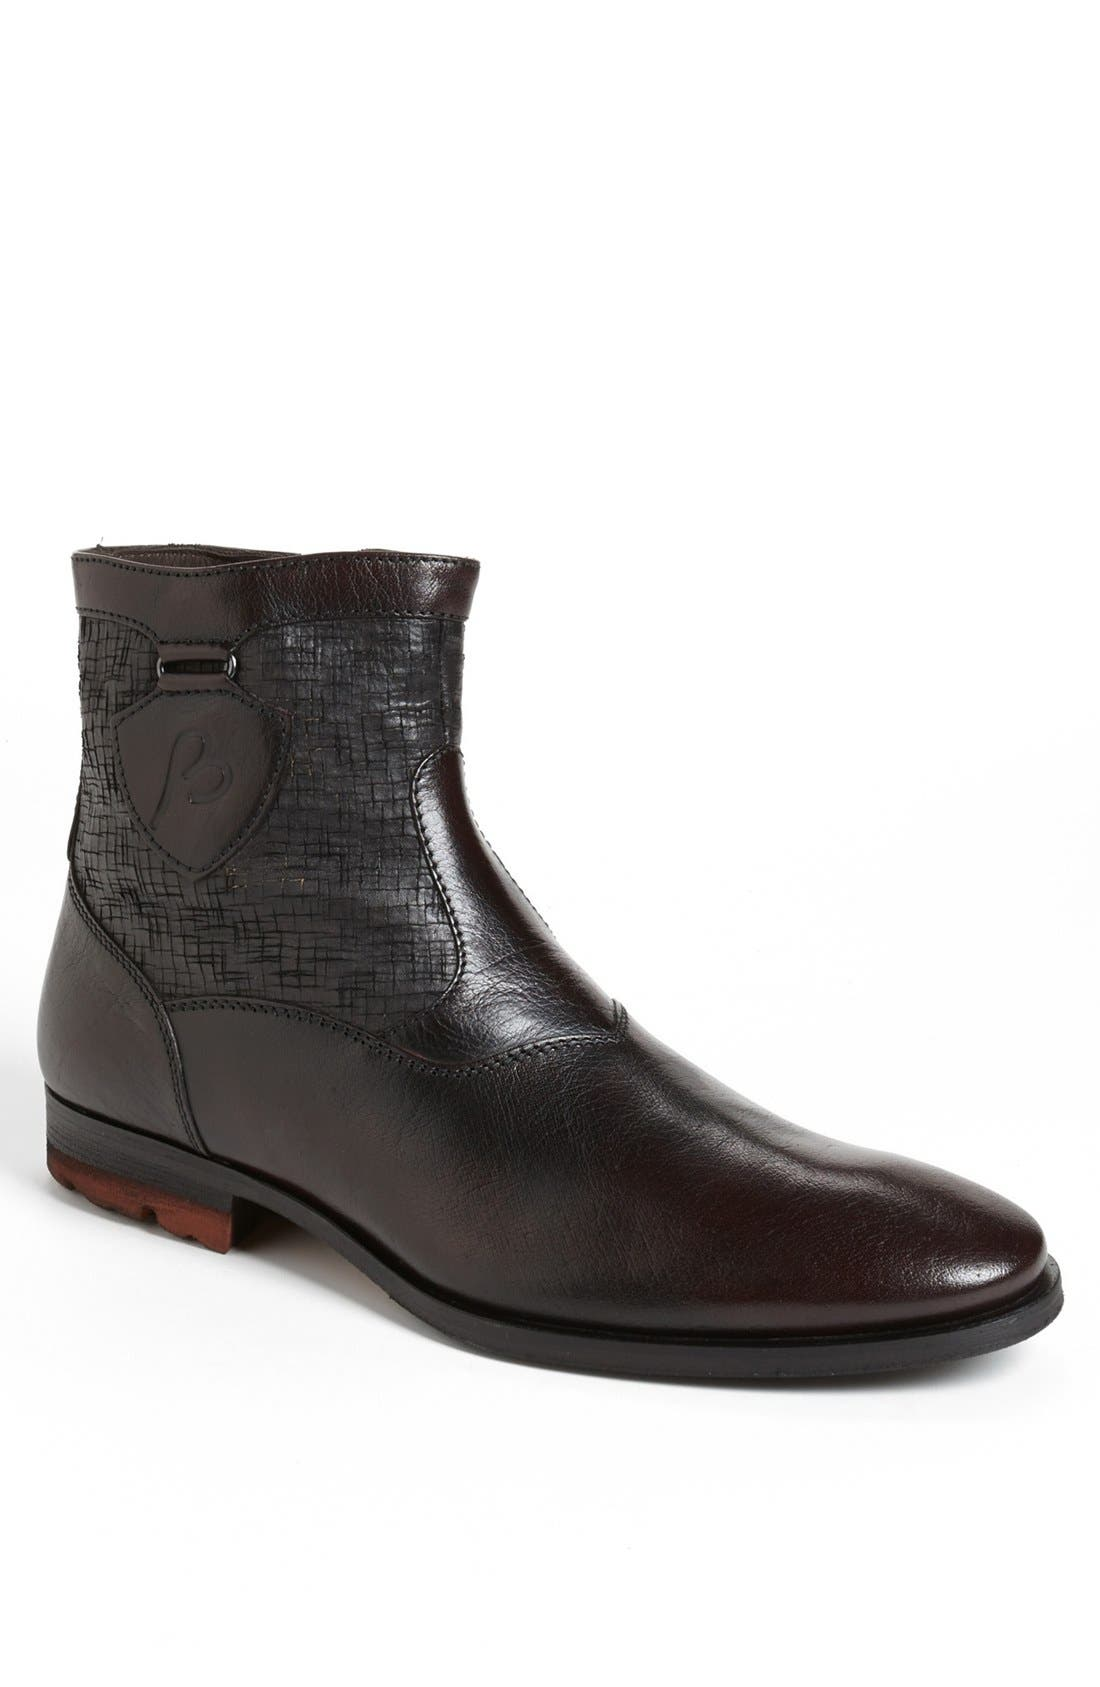 Alternate Image 1 Selected - Bacco Bucci 'Devito' Zip boot (Men) (Online Only)